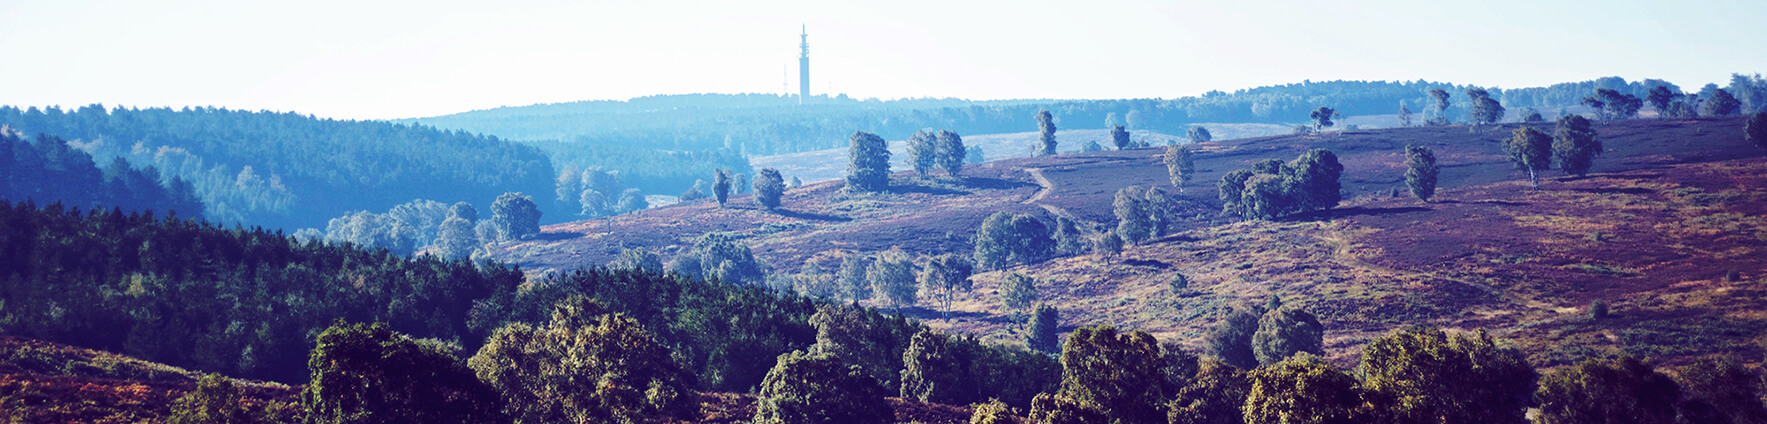 Cannock Chase SAC consultation